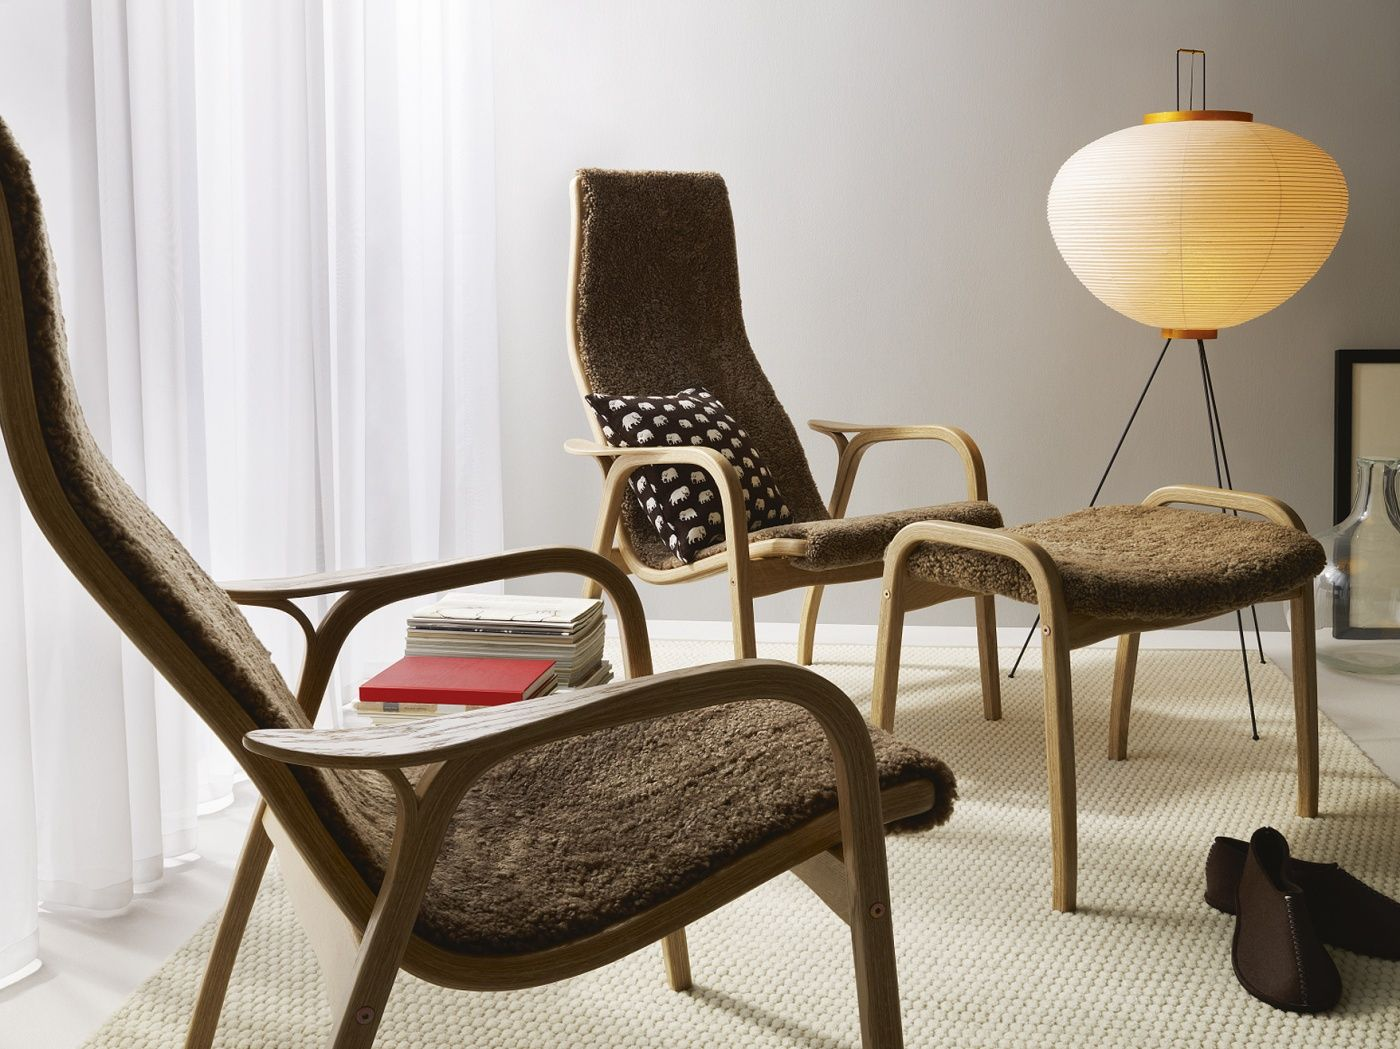 Two Lamino Easy Chairs by window in Saraha and oak